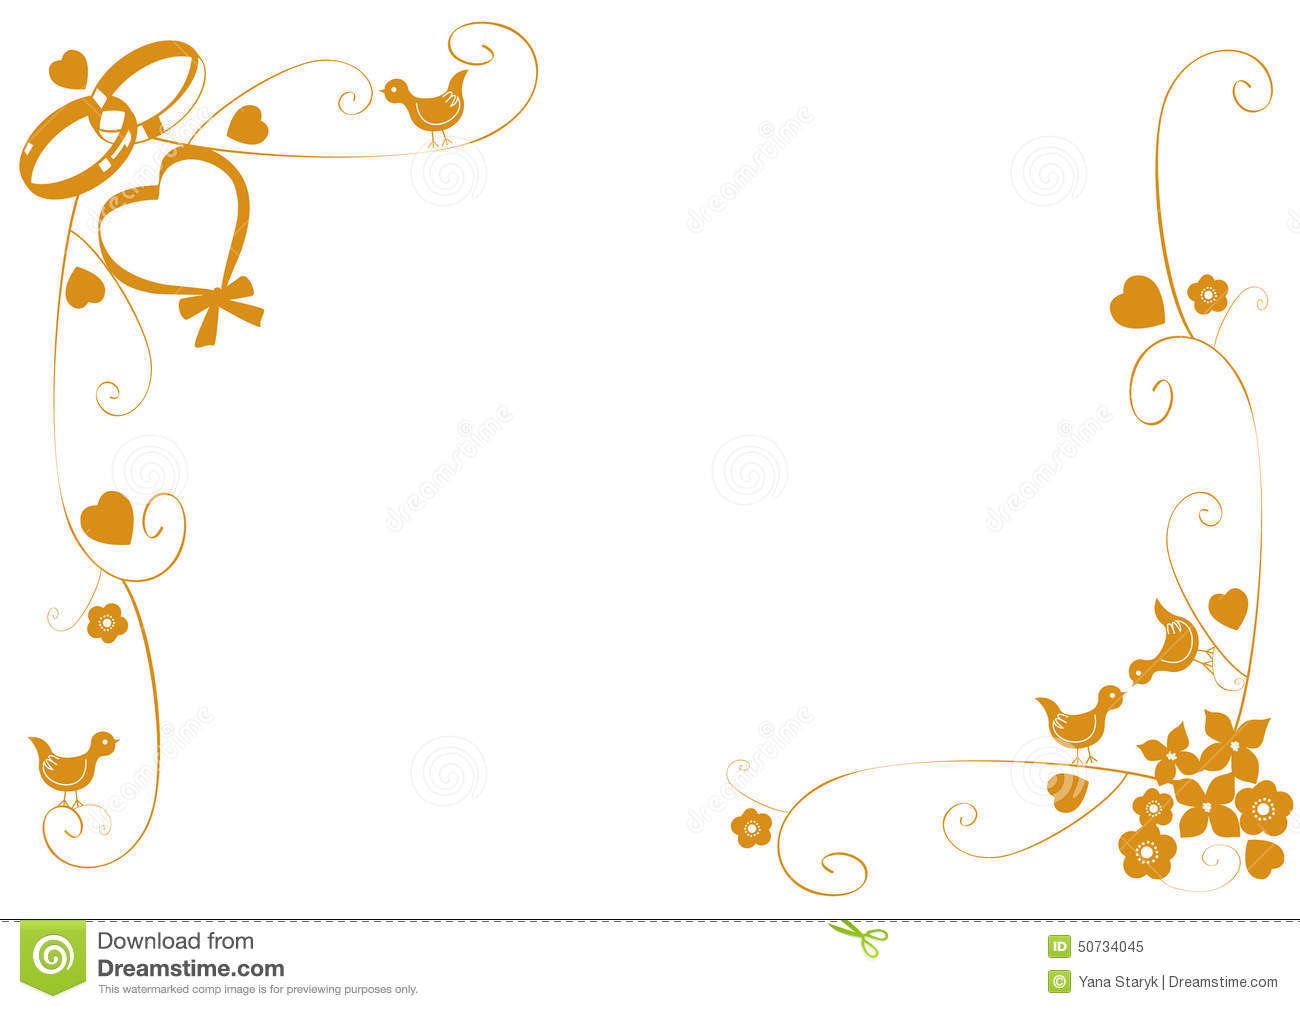 Wedding ring border clipart 3 » Clipart Station.